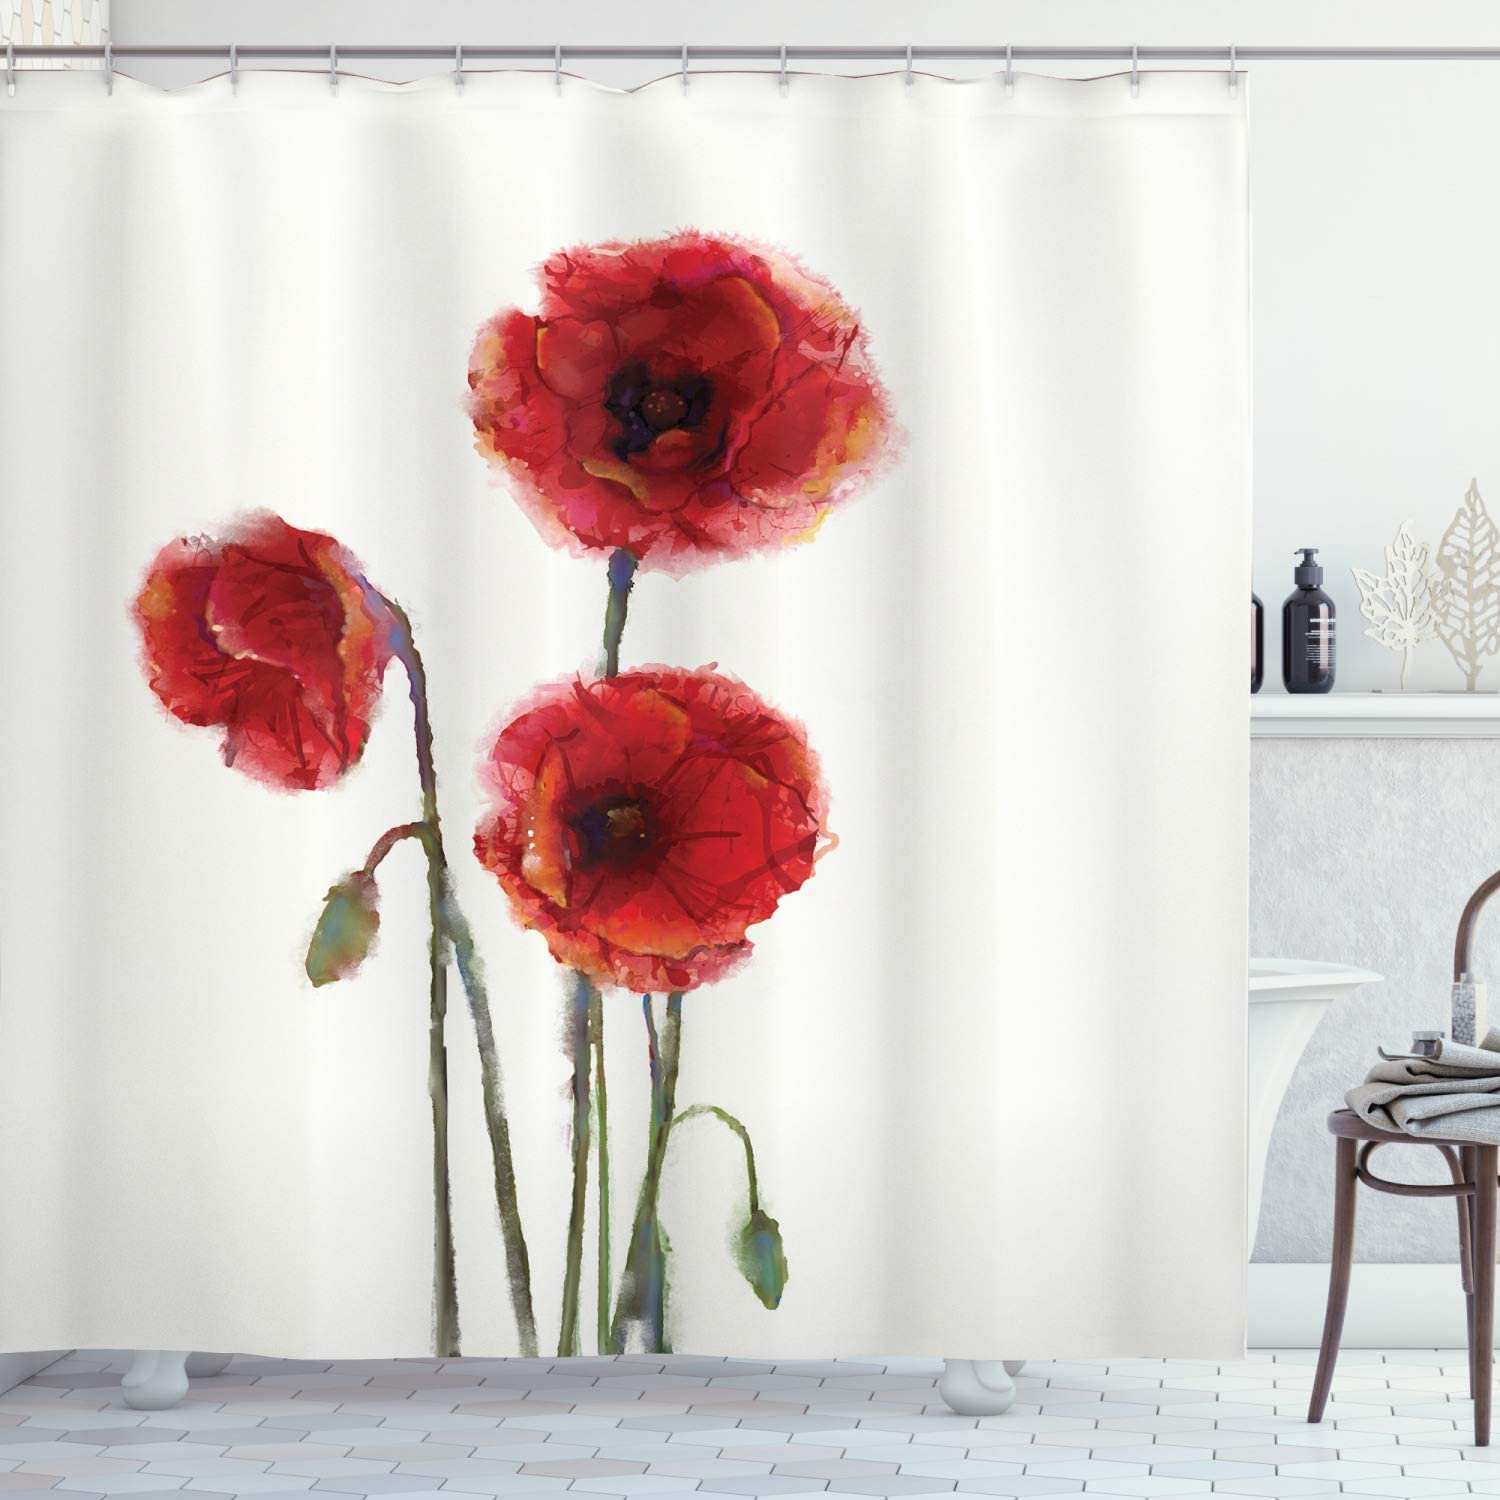 Ambesonne Watercolor Flower Shower Curtain, Poppy Flowers Spring Blossoms with Watercolor Painting Effect, Cloth Fabric Bathroom Decor Set with Hooks, 70